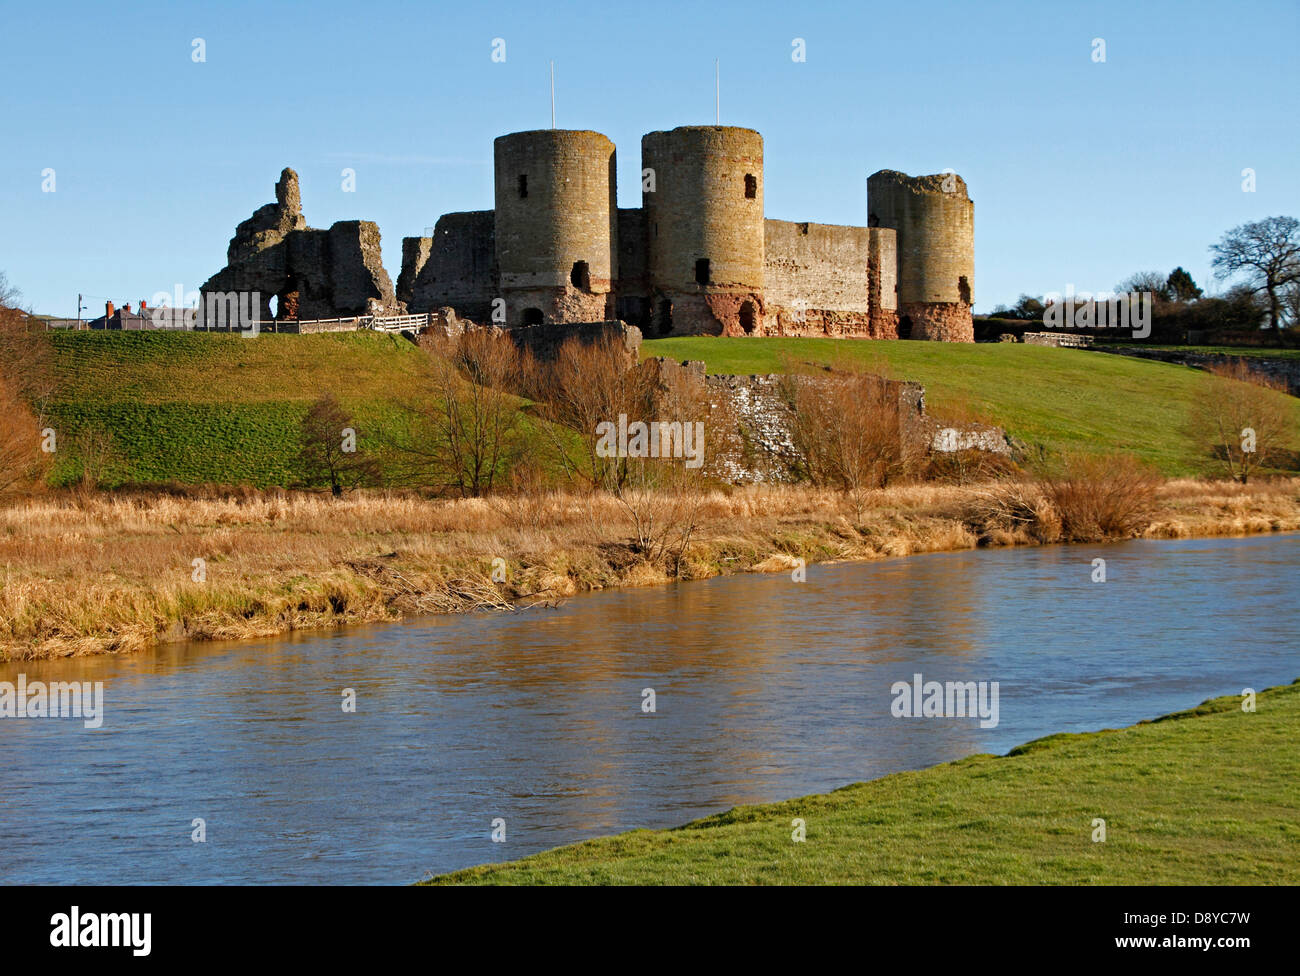 Wales Denbighshire Rhuddlan Castle overlooking the river Clwyd built in 1277 by King Edward 1 following the first - Stock Image